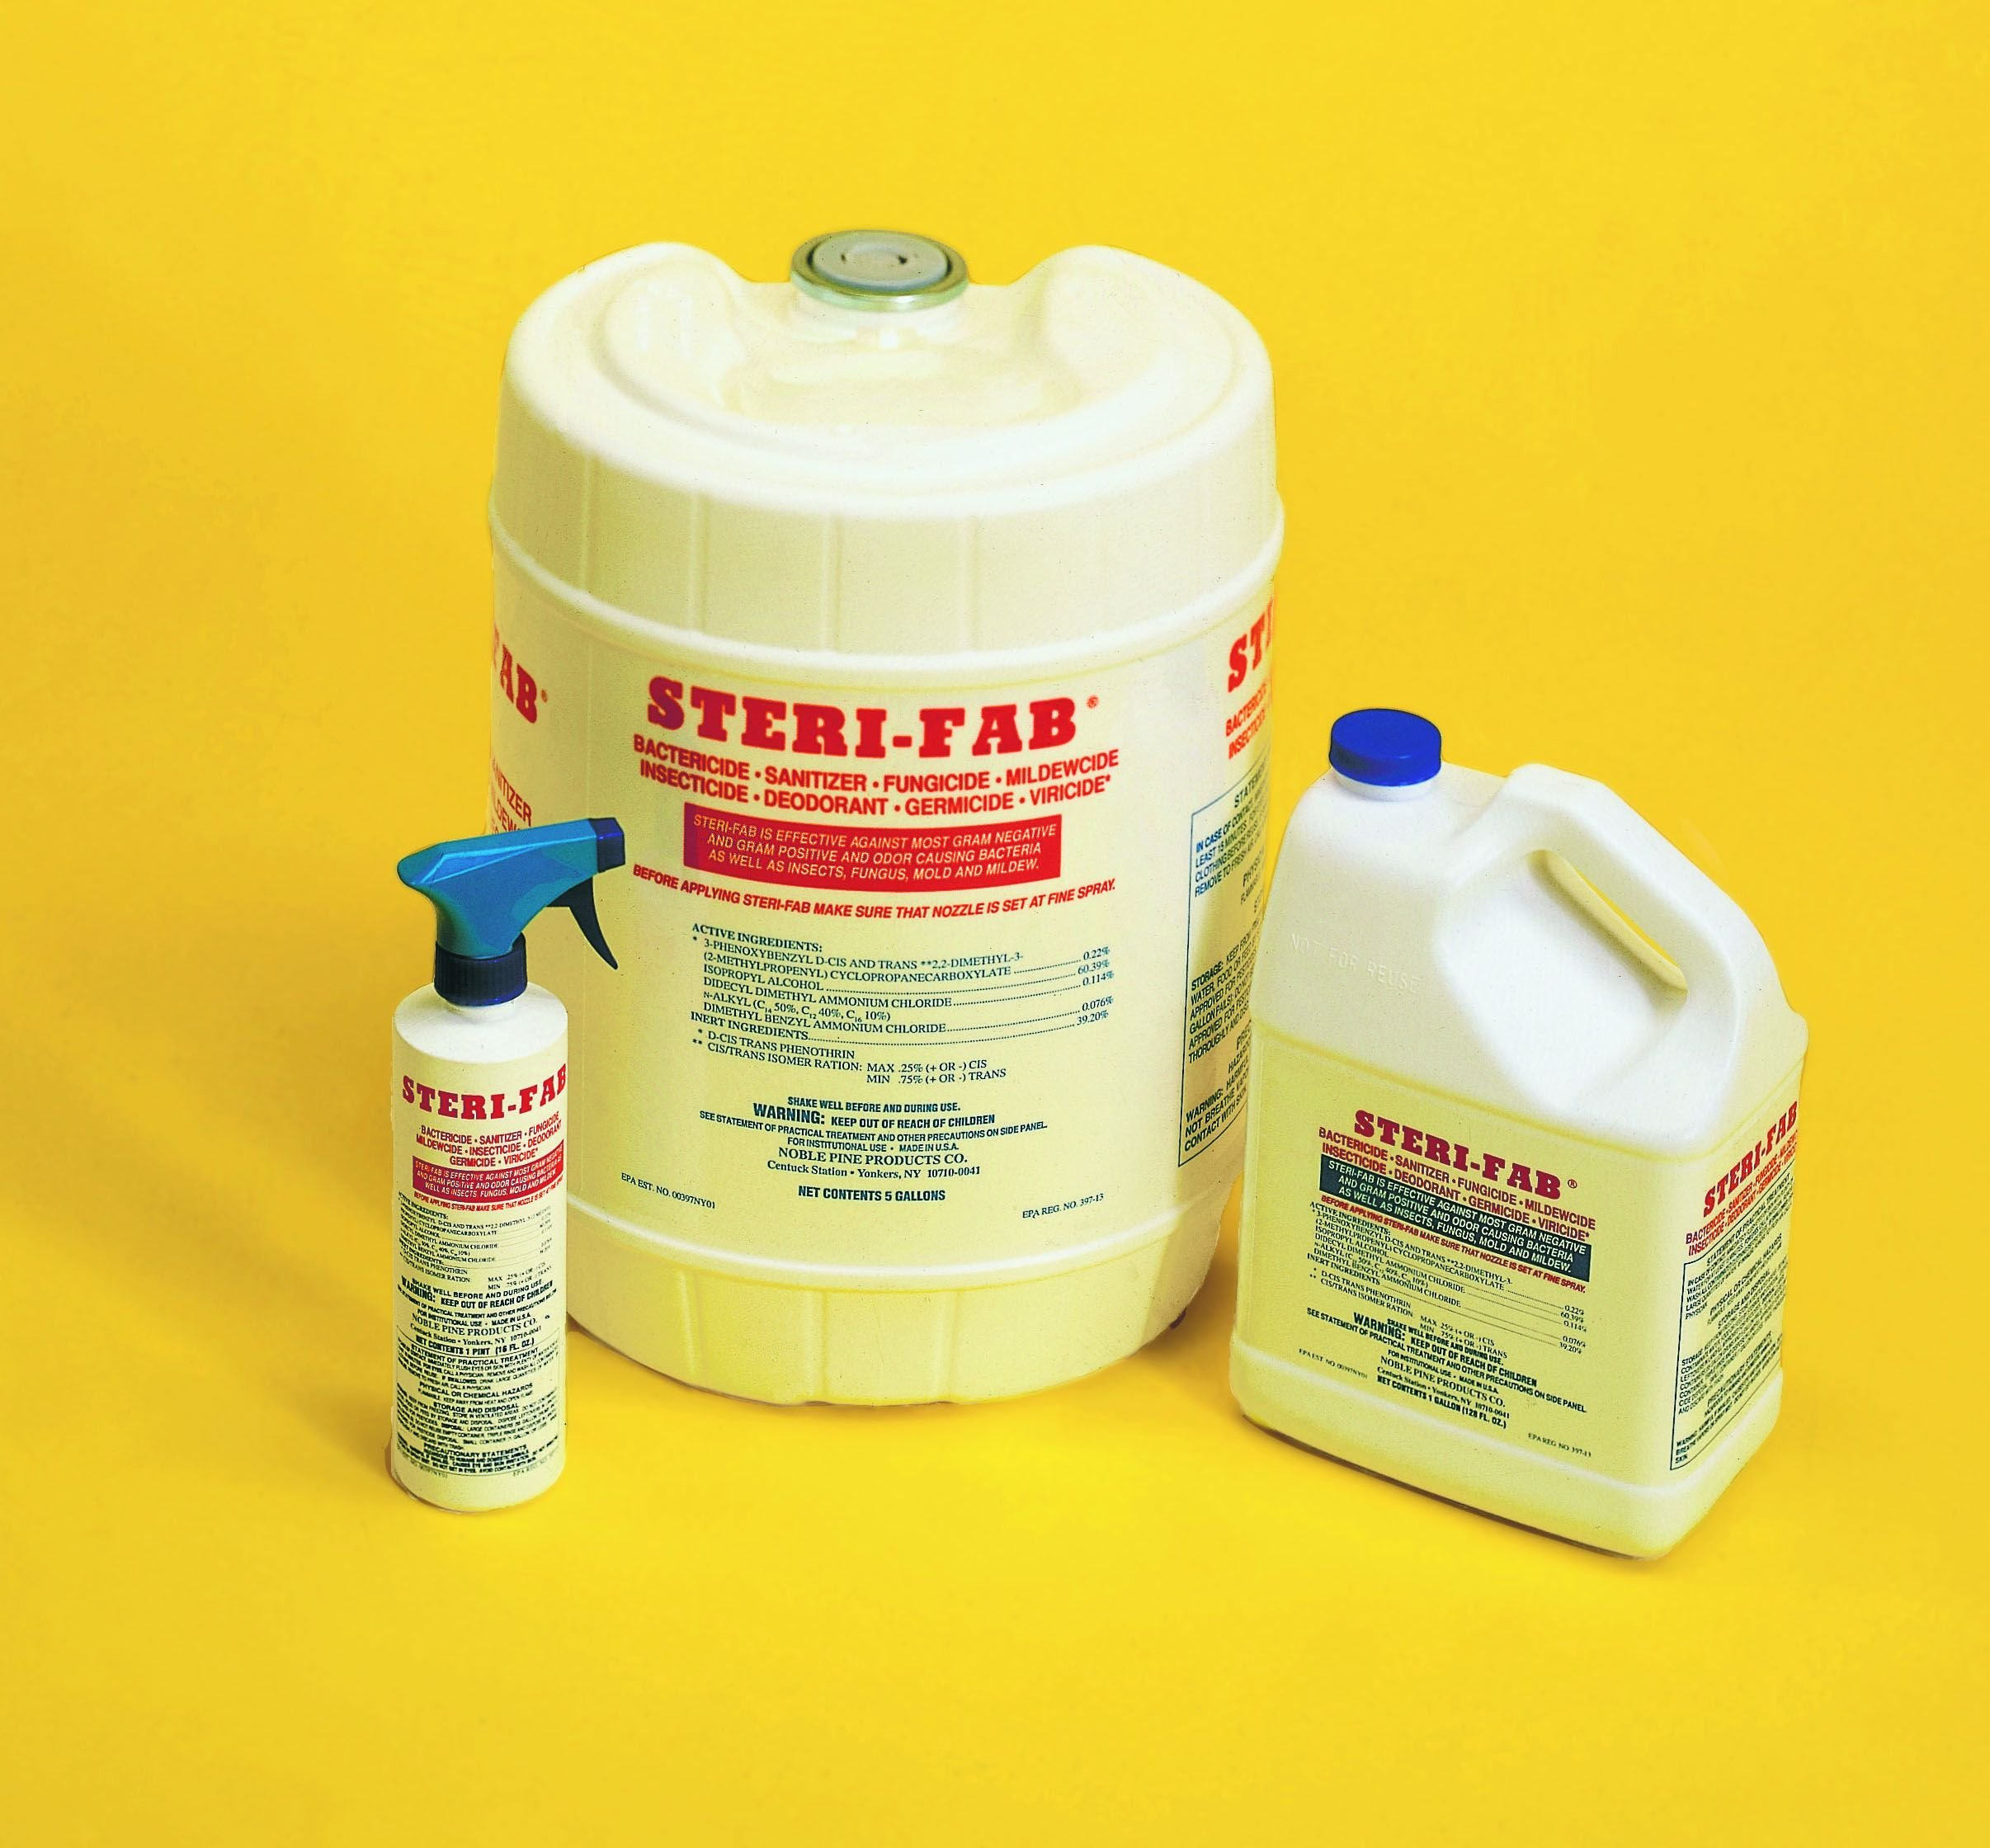 STERI-FAB Disinfecting Solution